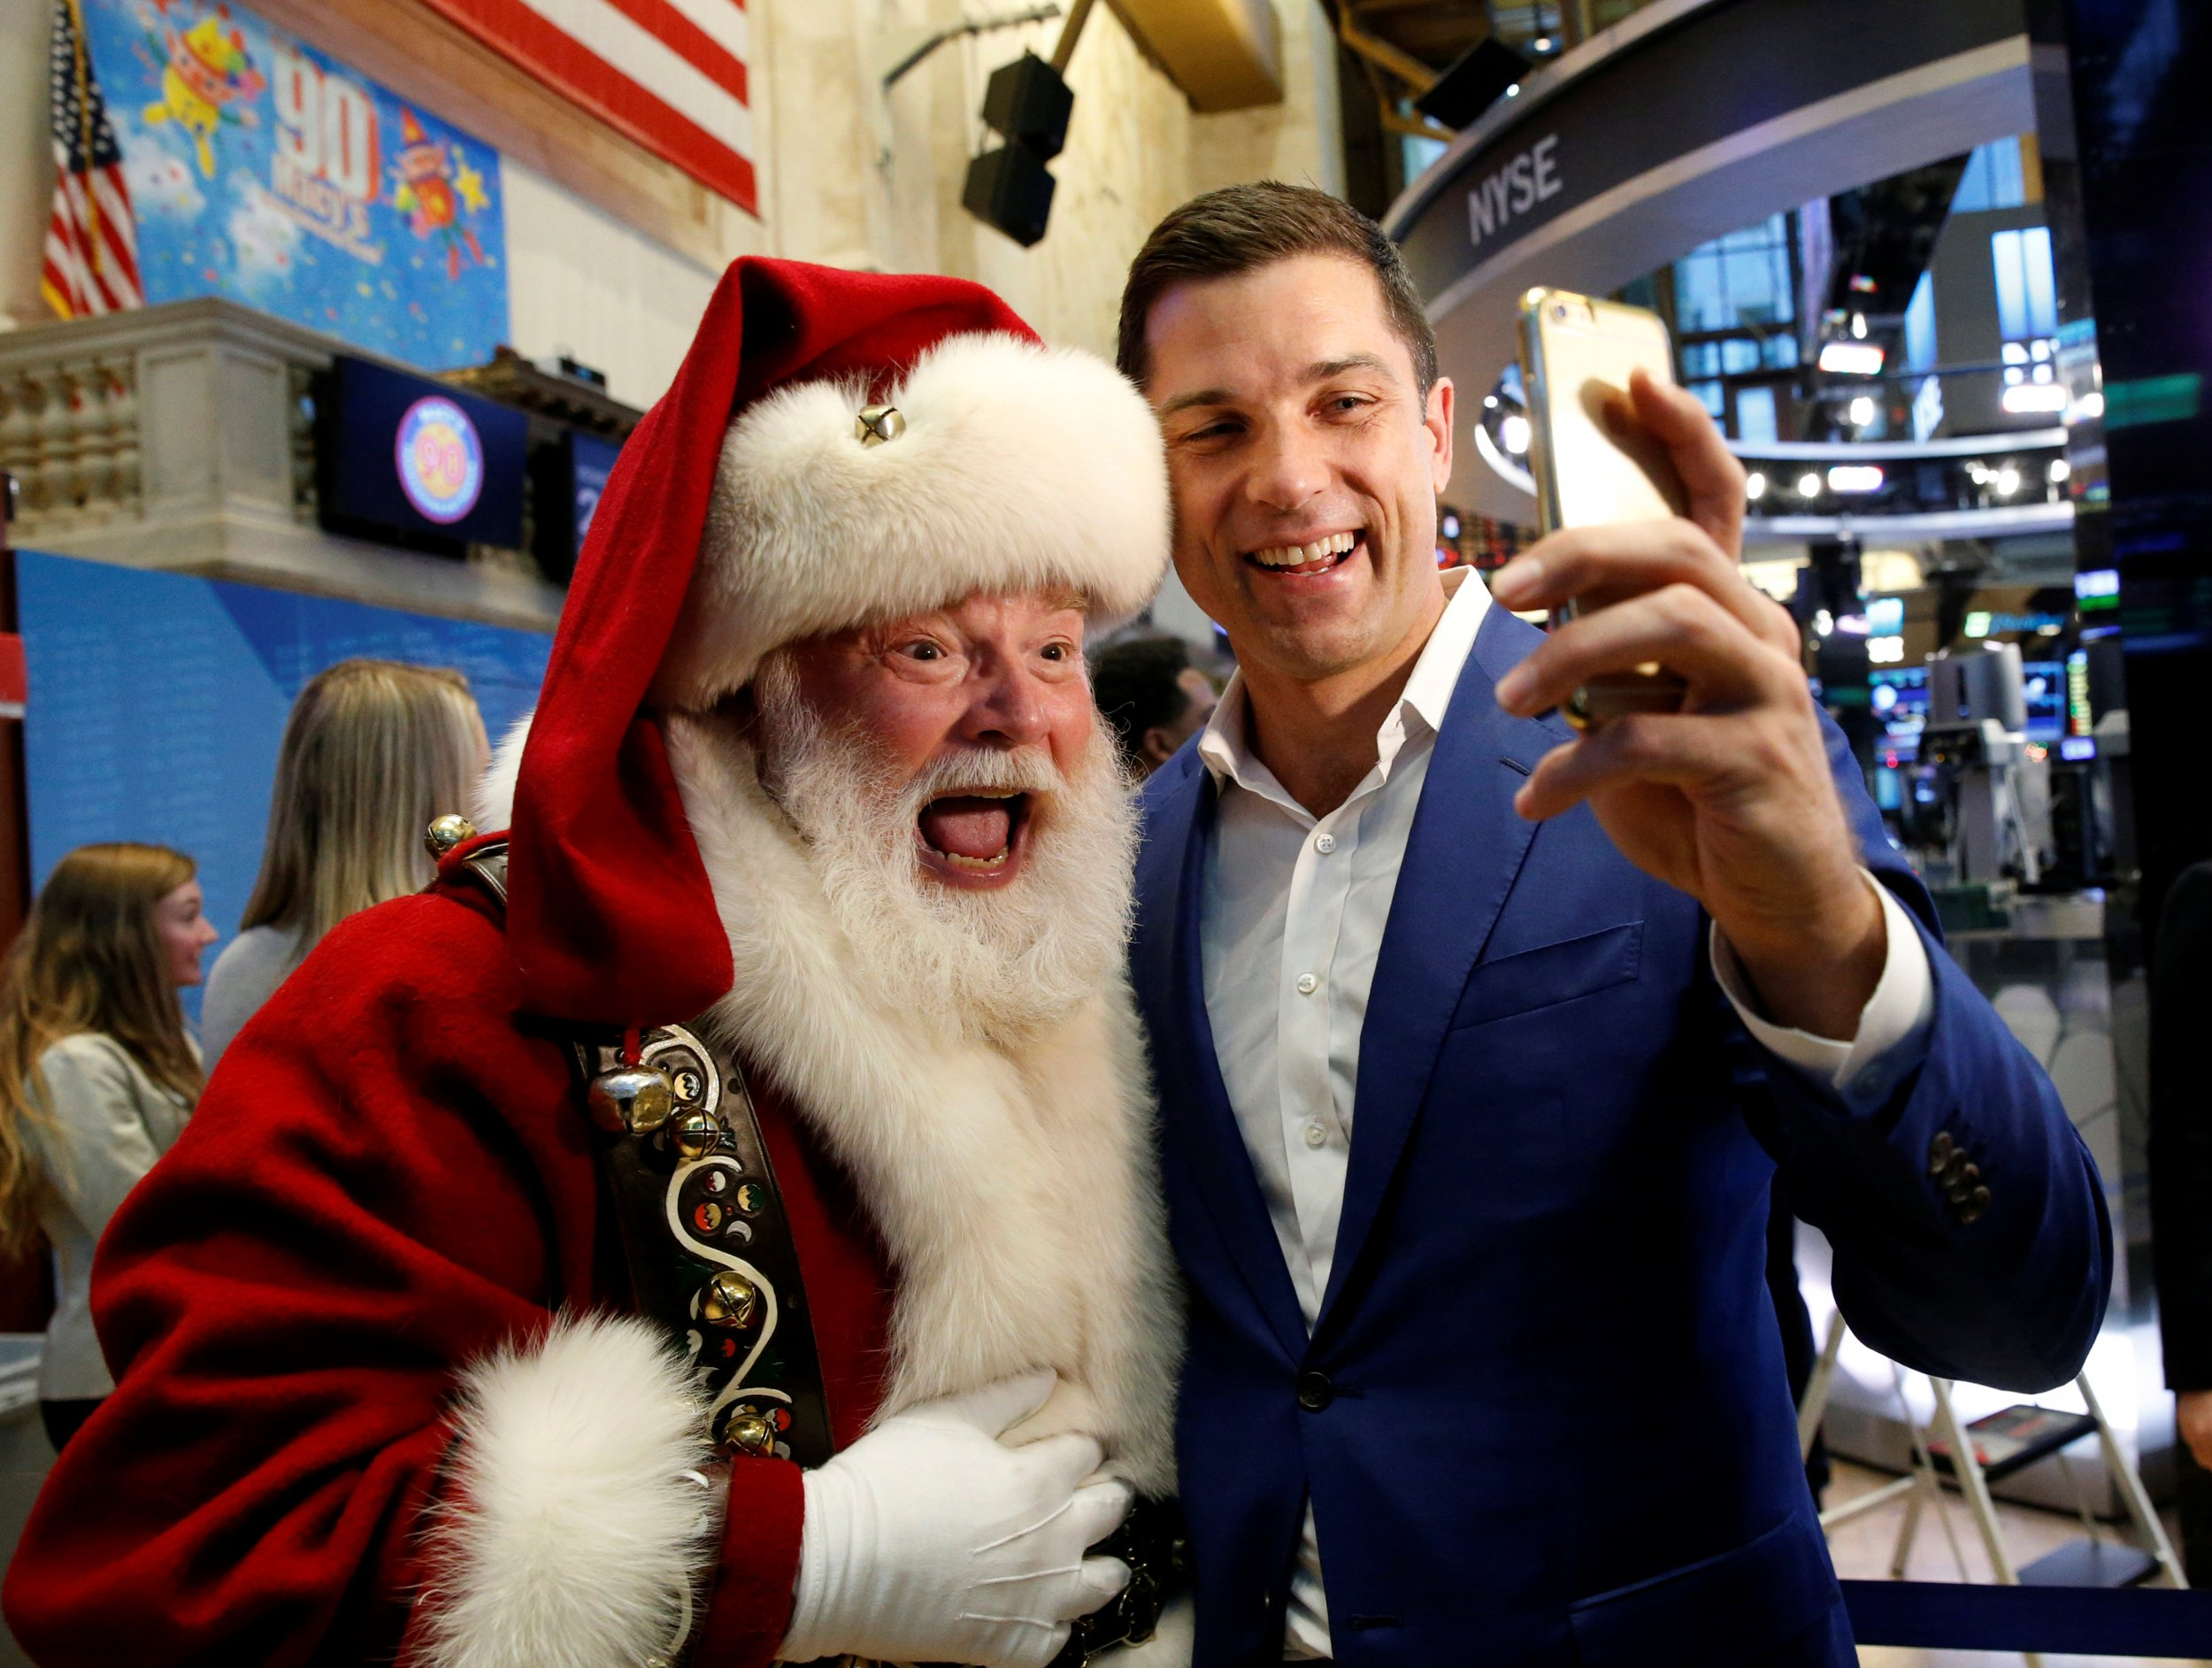 Santa and Tom Farley